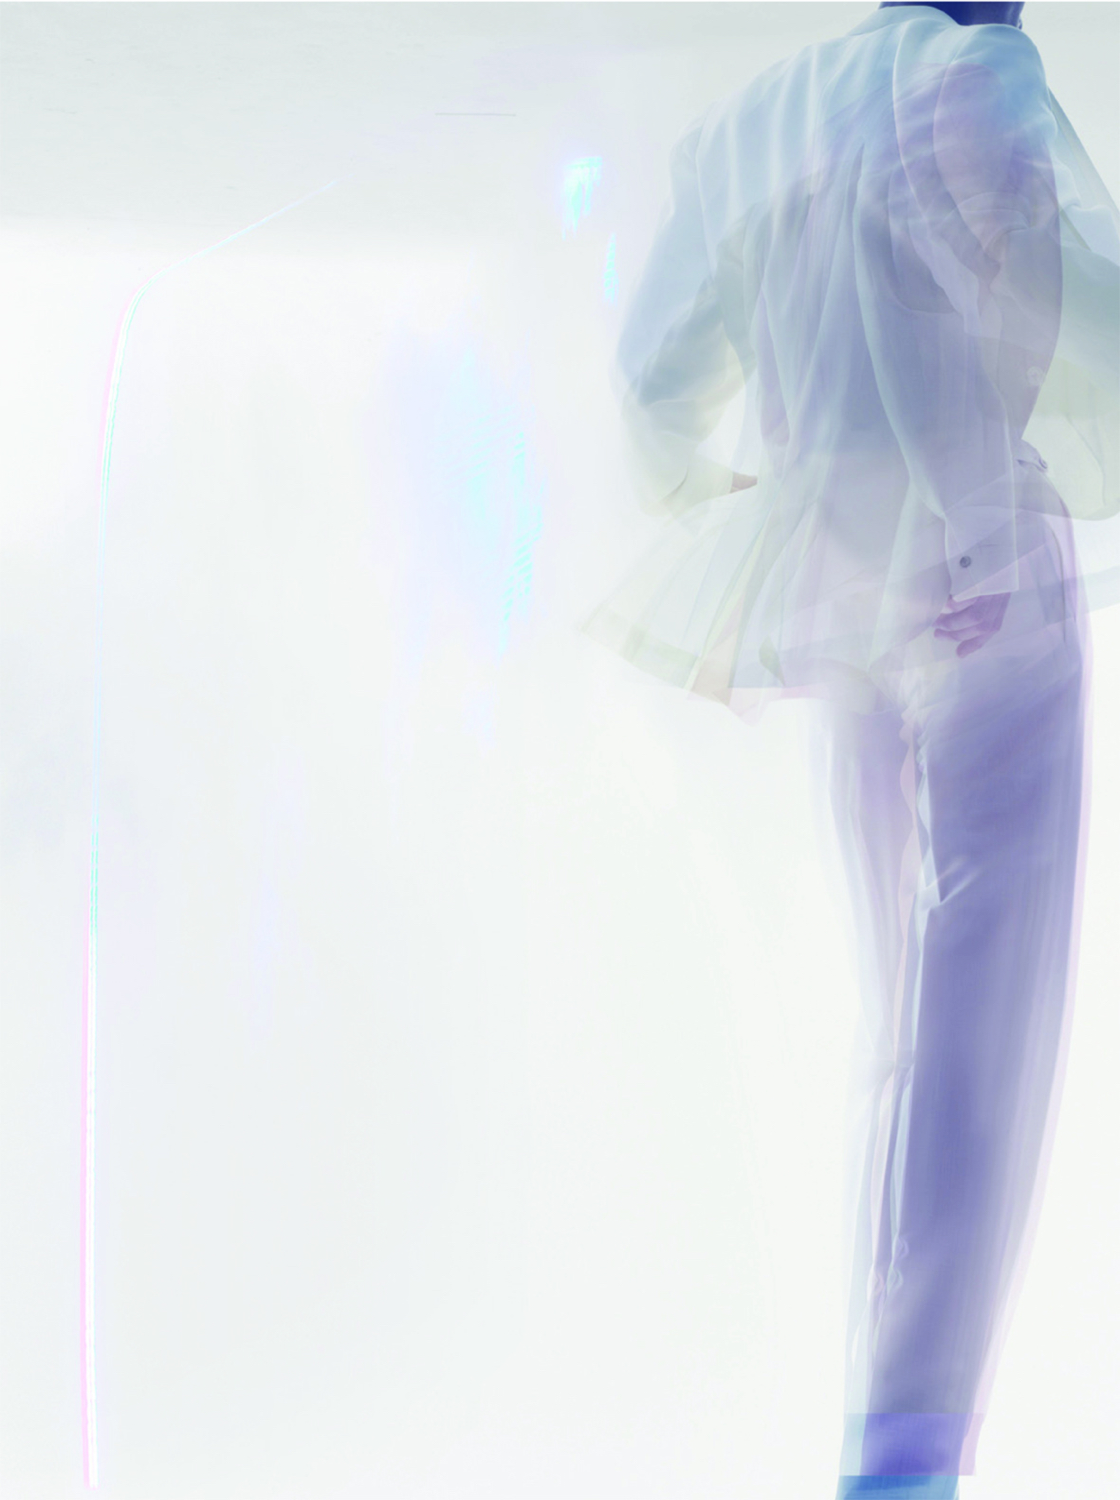 Unstructured image 2007. Photograph Nick Knight.